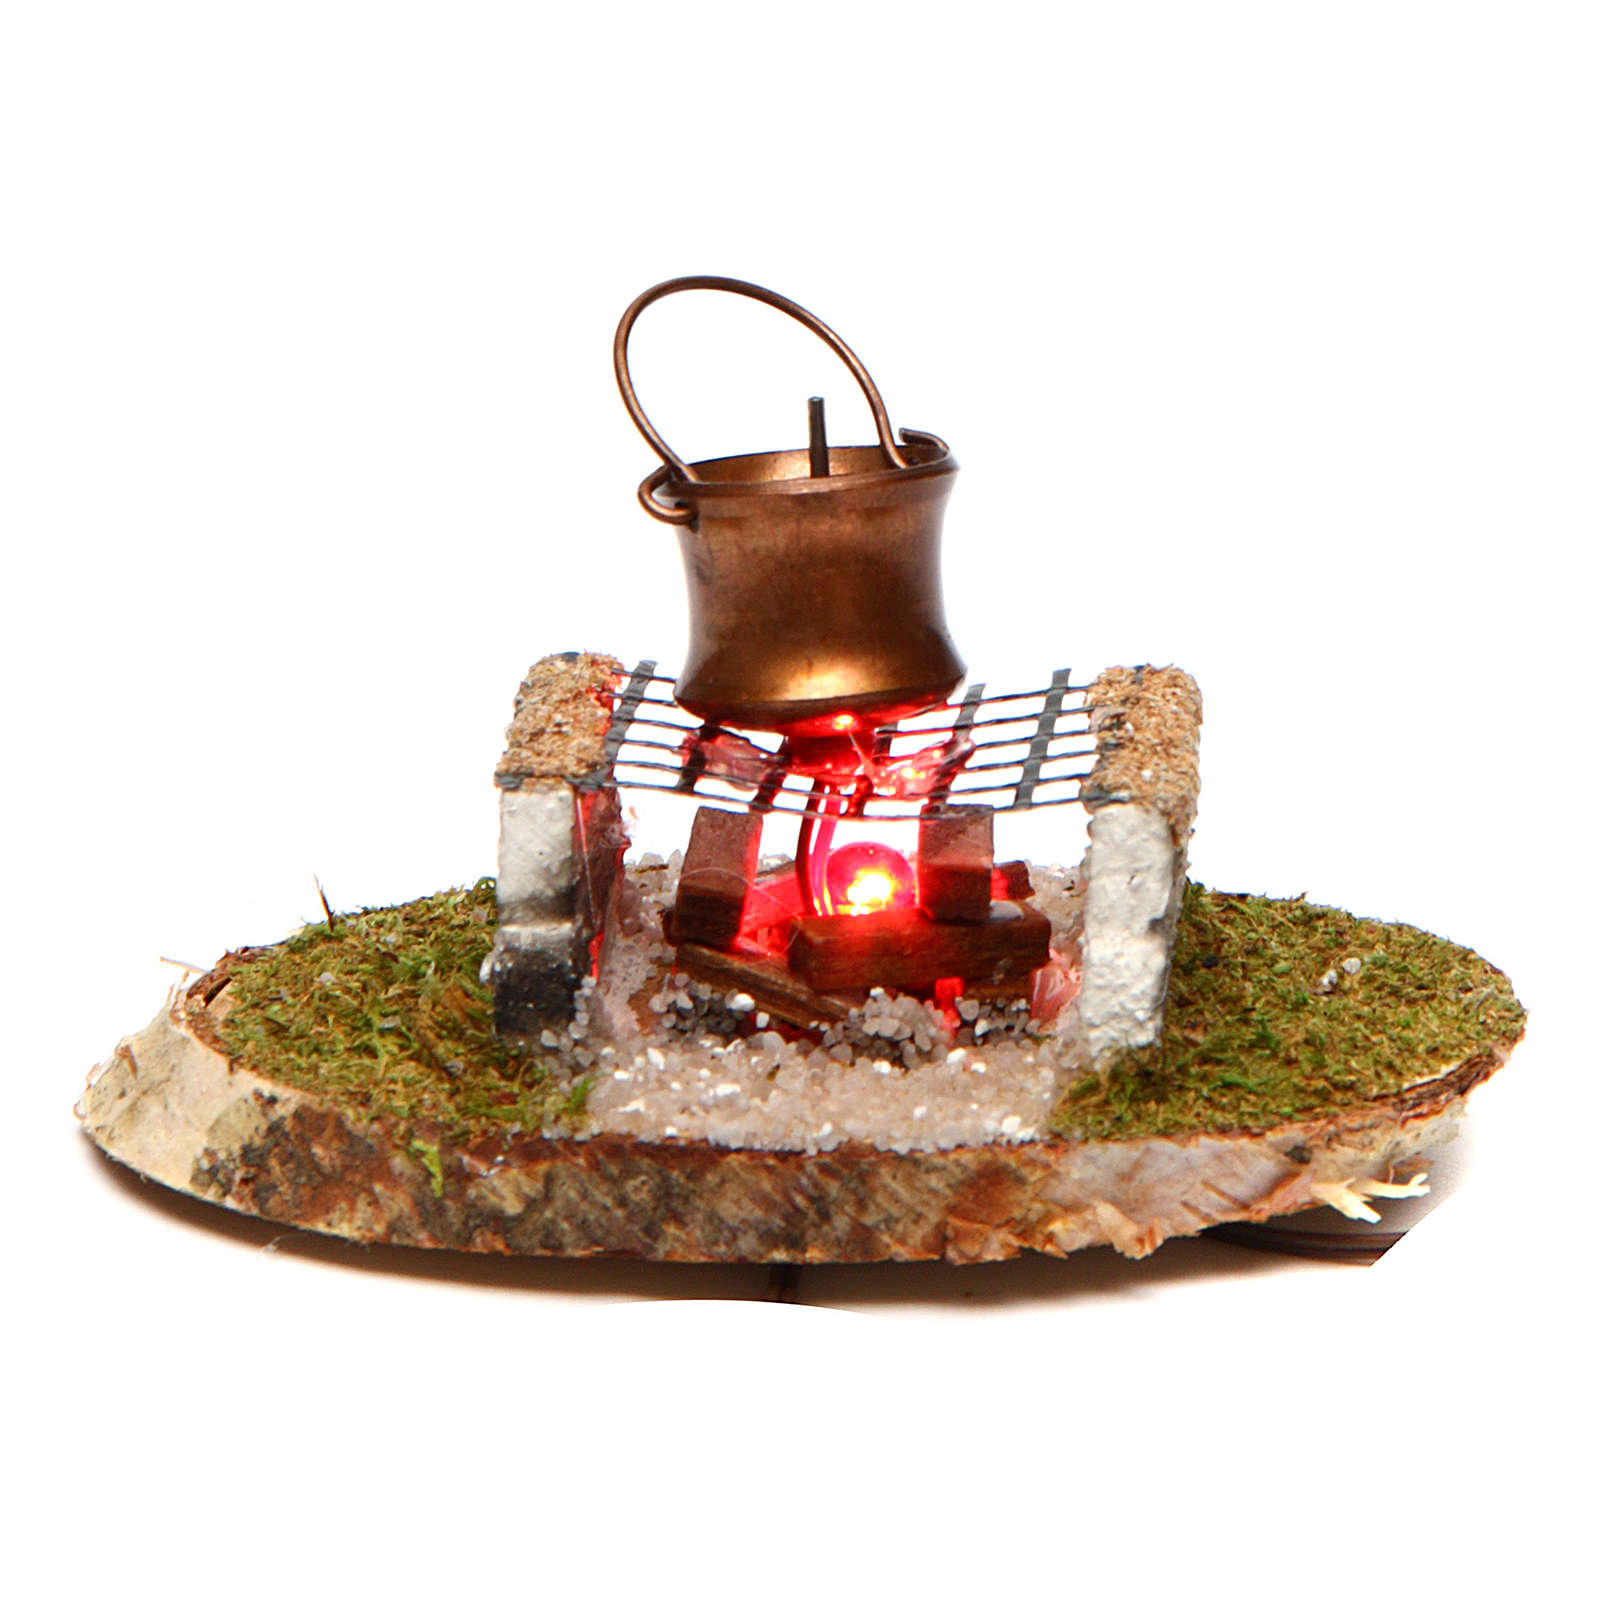 Pot on stone grill in fireplace 4,5 V 4